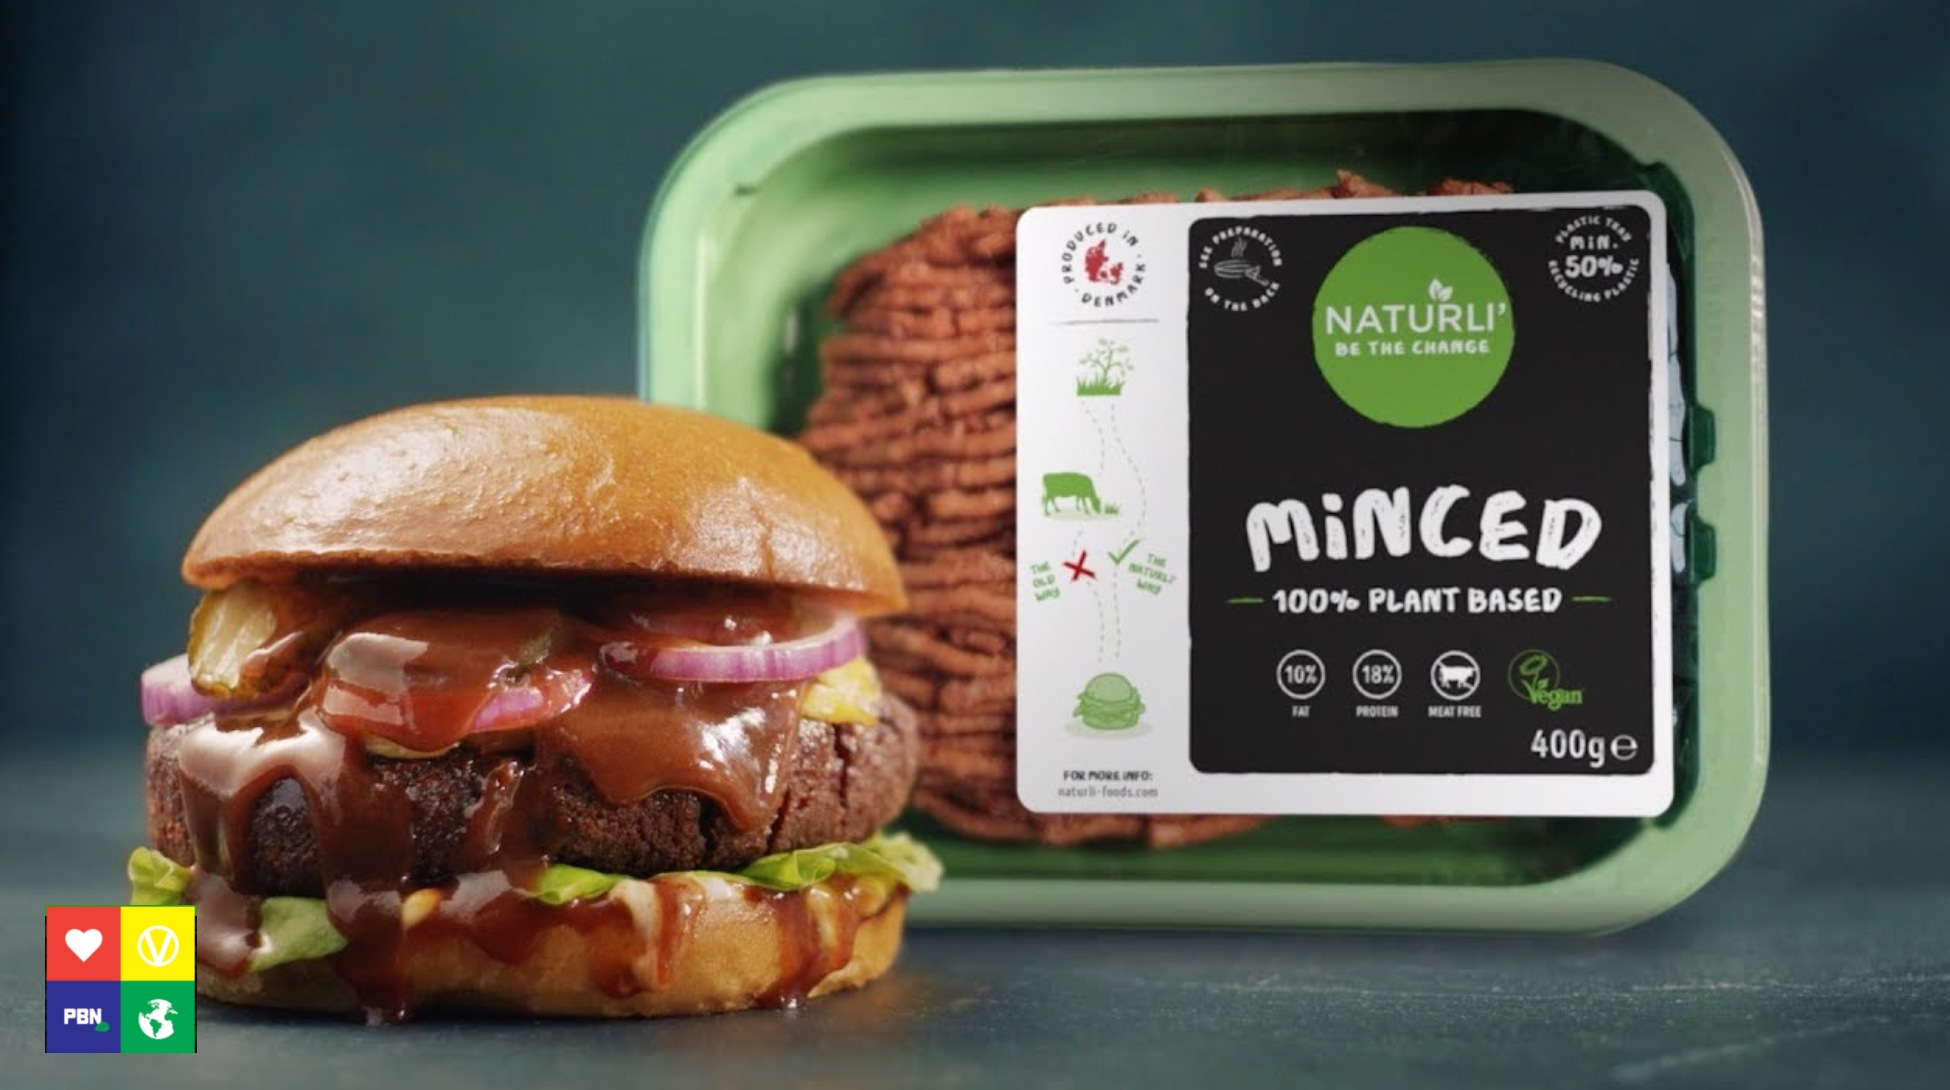 Vegan mince and burgers from Naturli' Foods